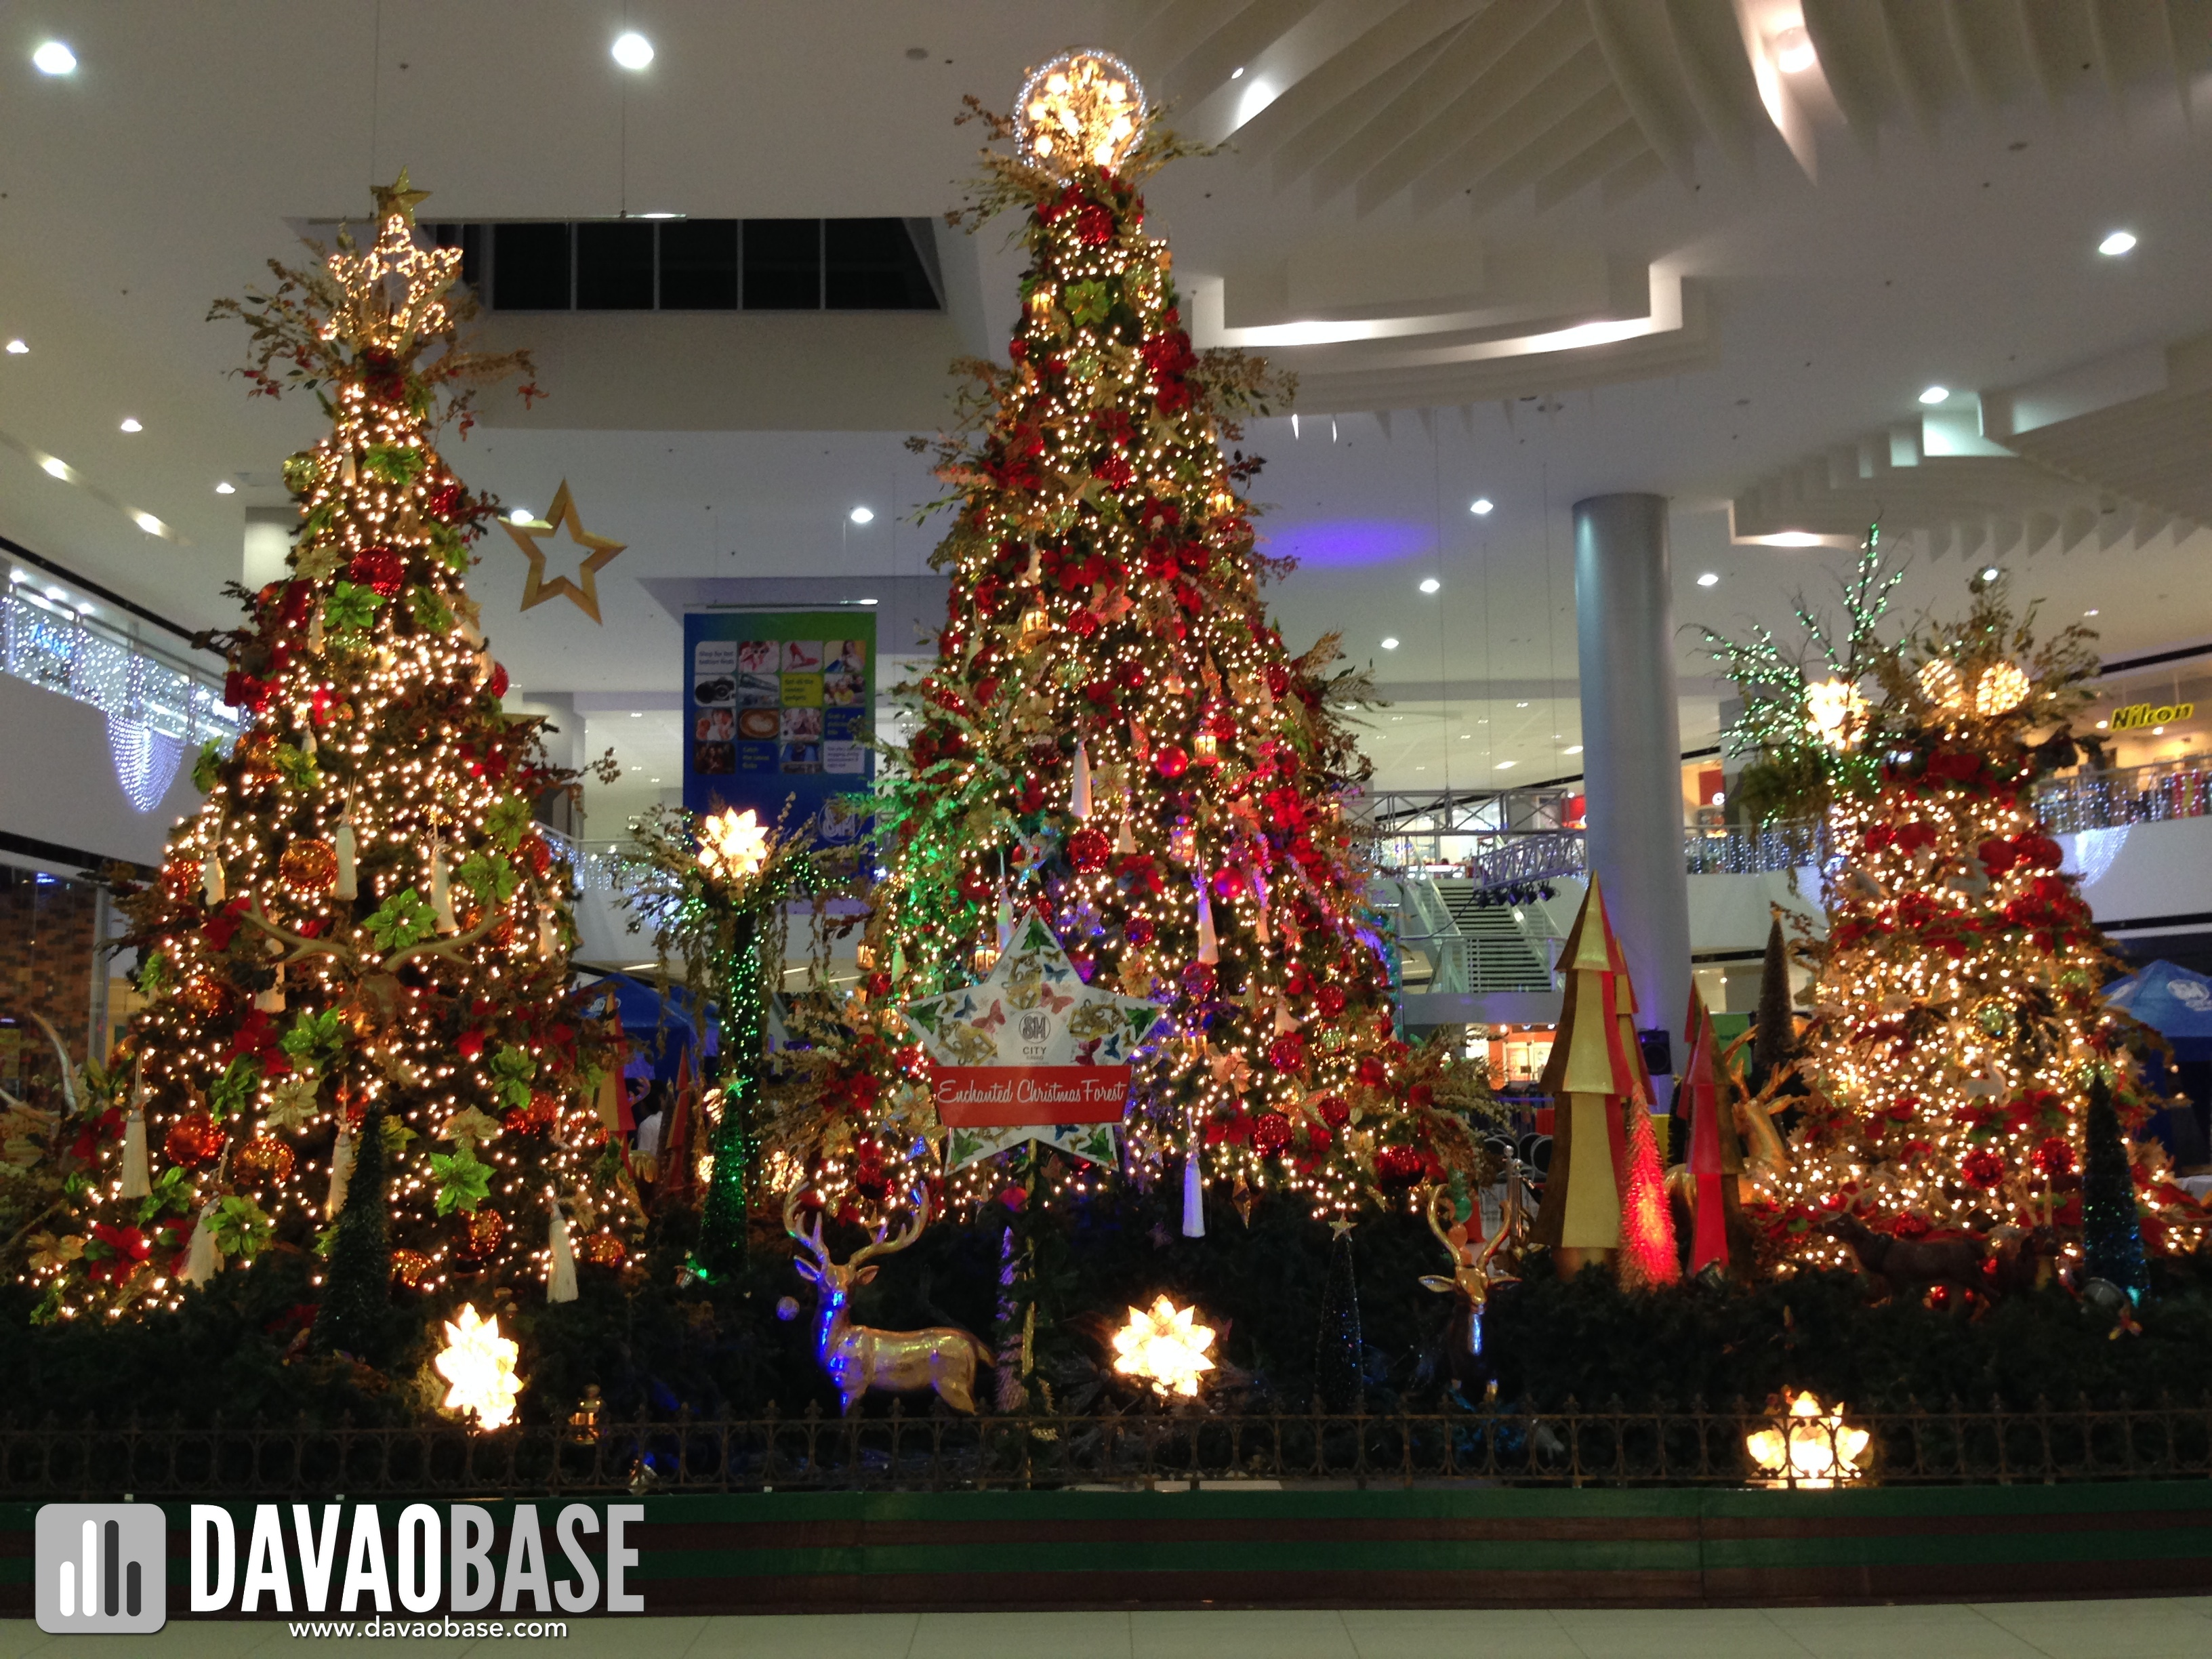 Spotted awesome christmas trees in davao davaobase Christmas tree decorating ideas philippines